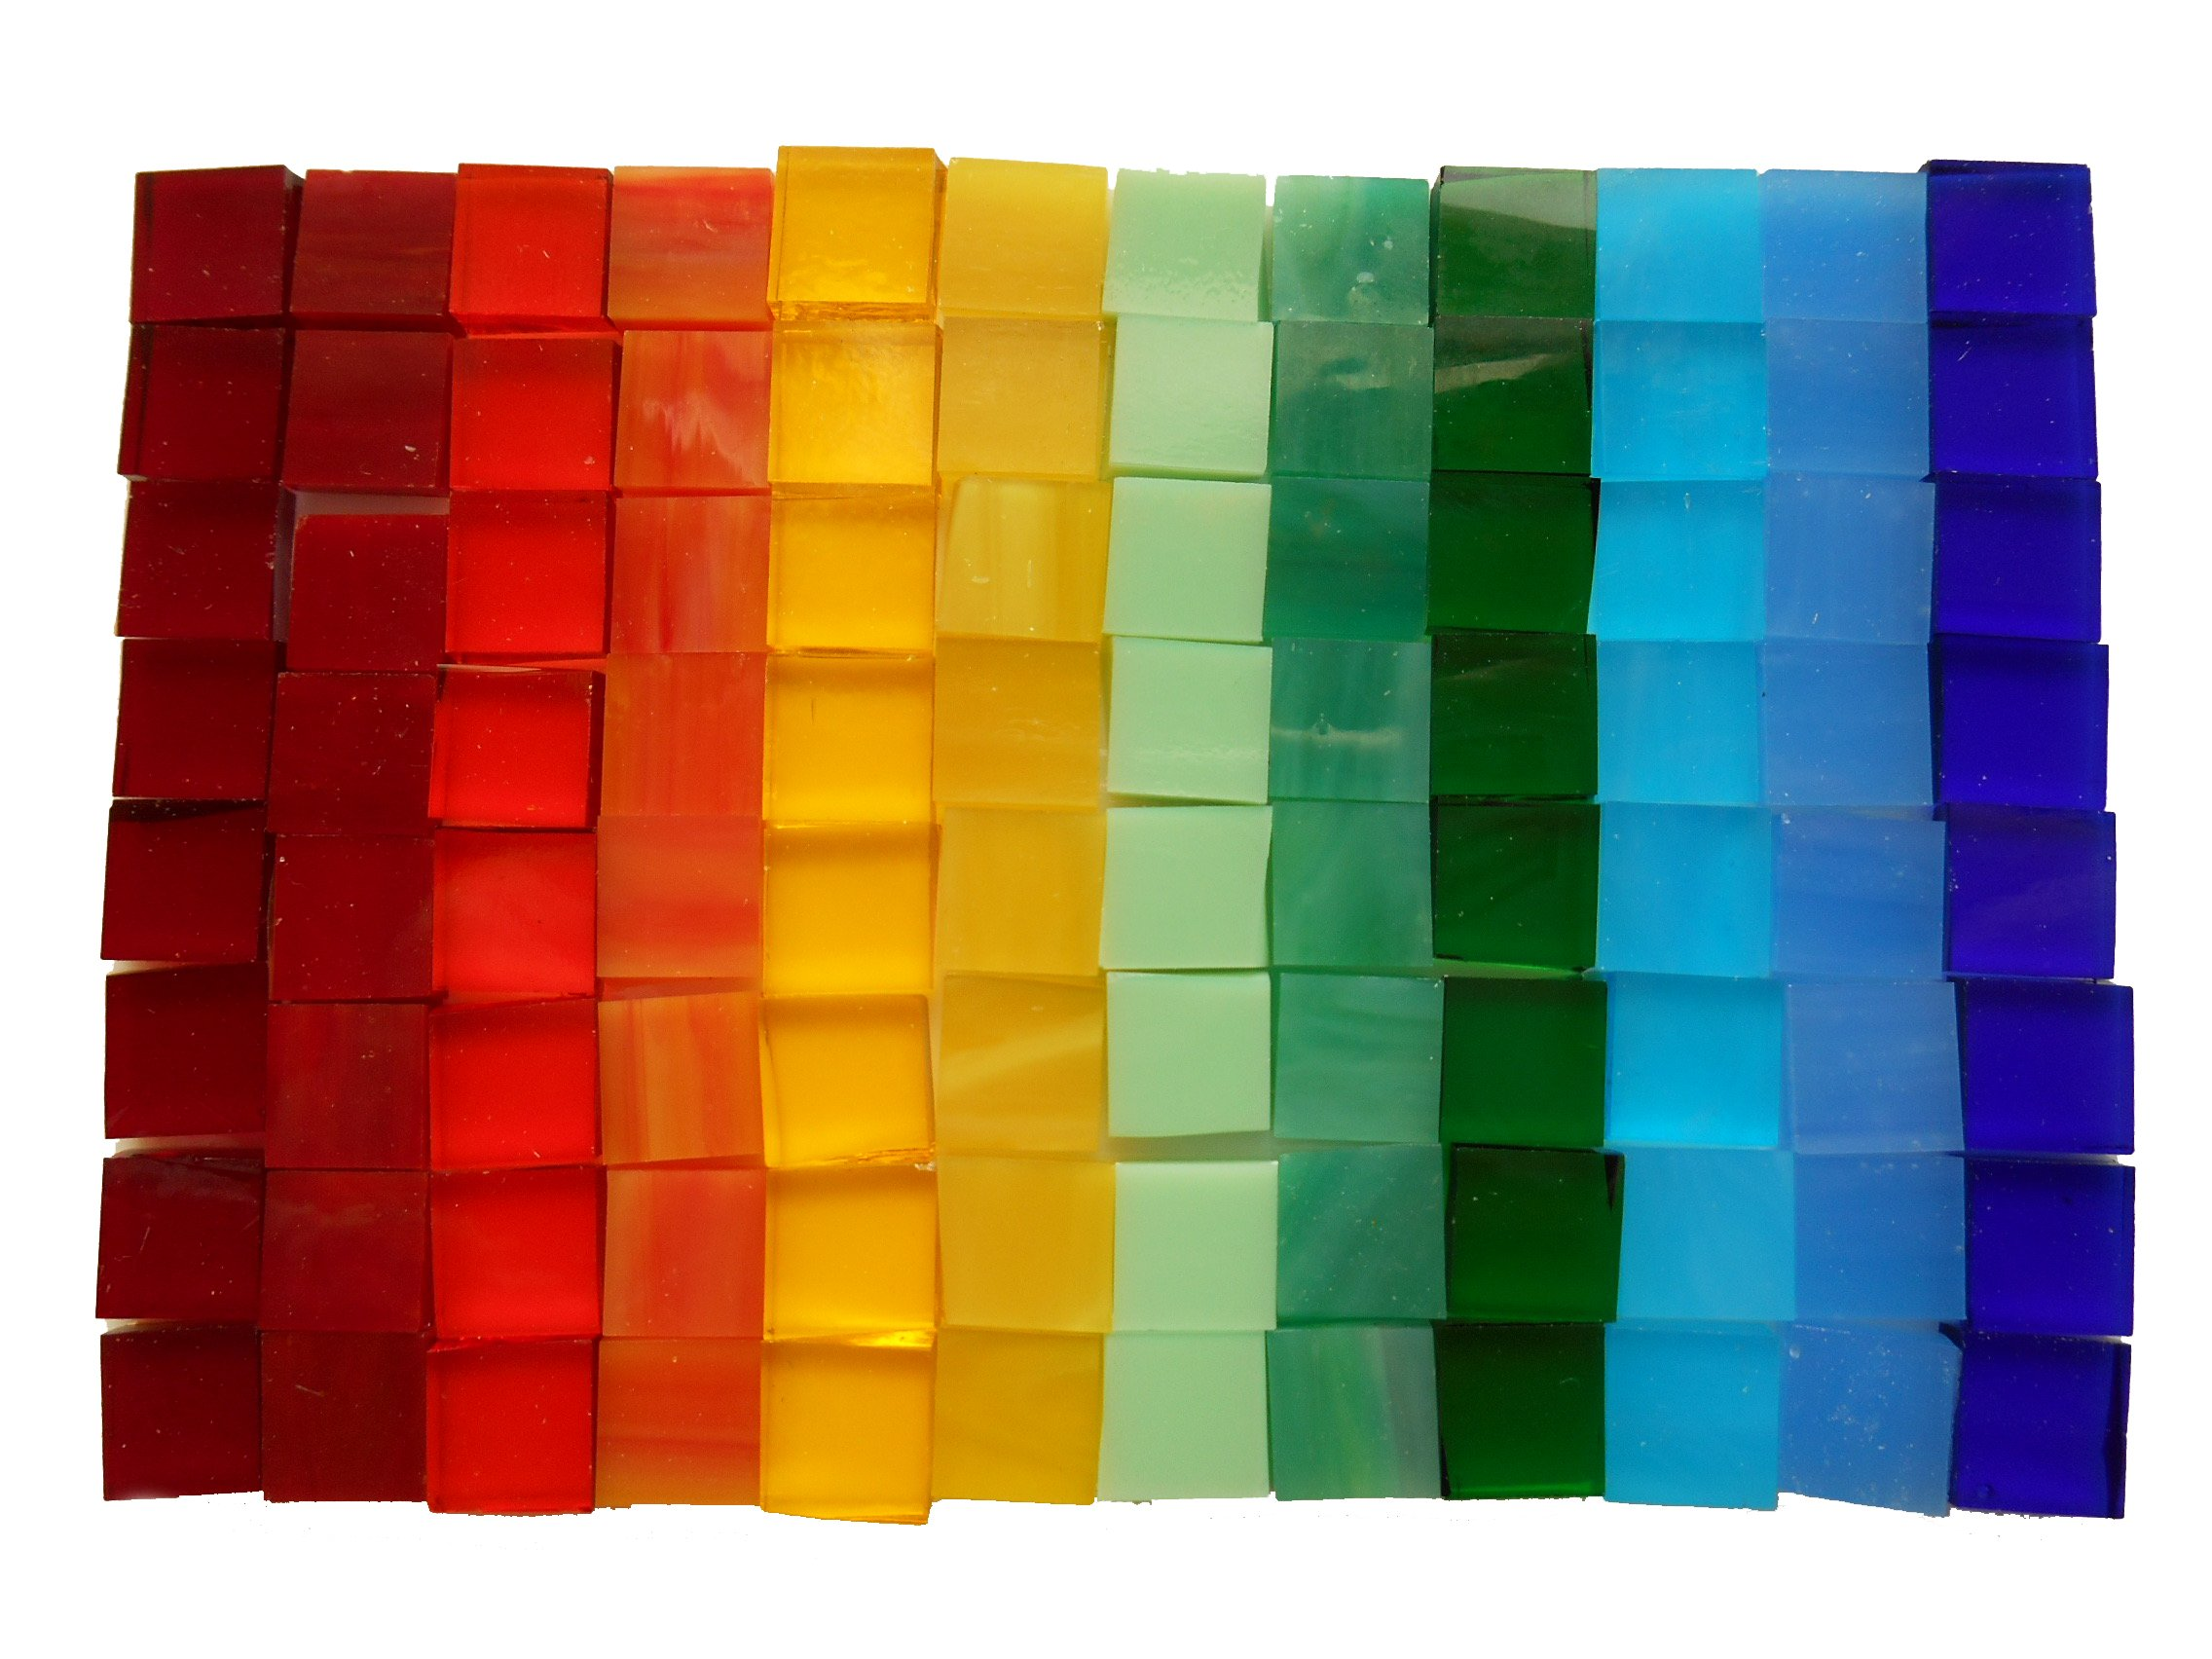 550 1 cm x 1 cm Square Pieces Mixed Color Glass Mosaic Tiles USA Made Mosaic Glass Pieces for Home Decoration or DIY Crafts